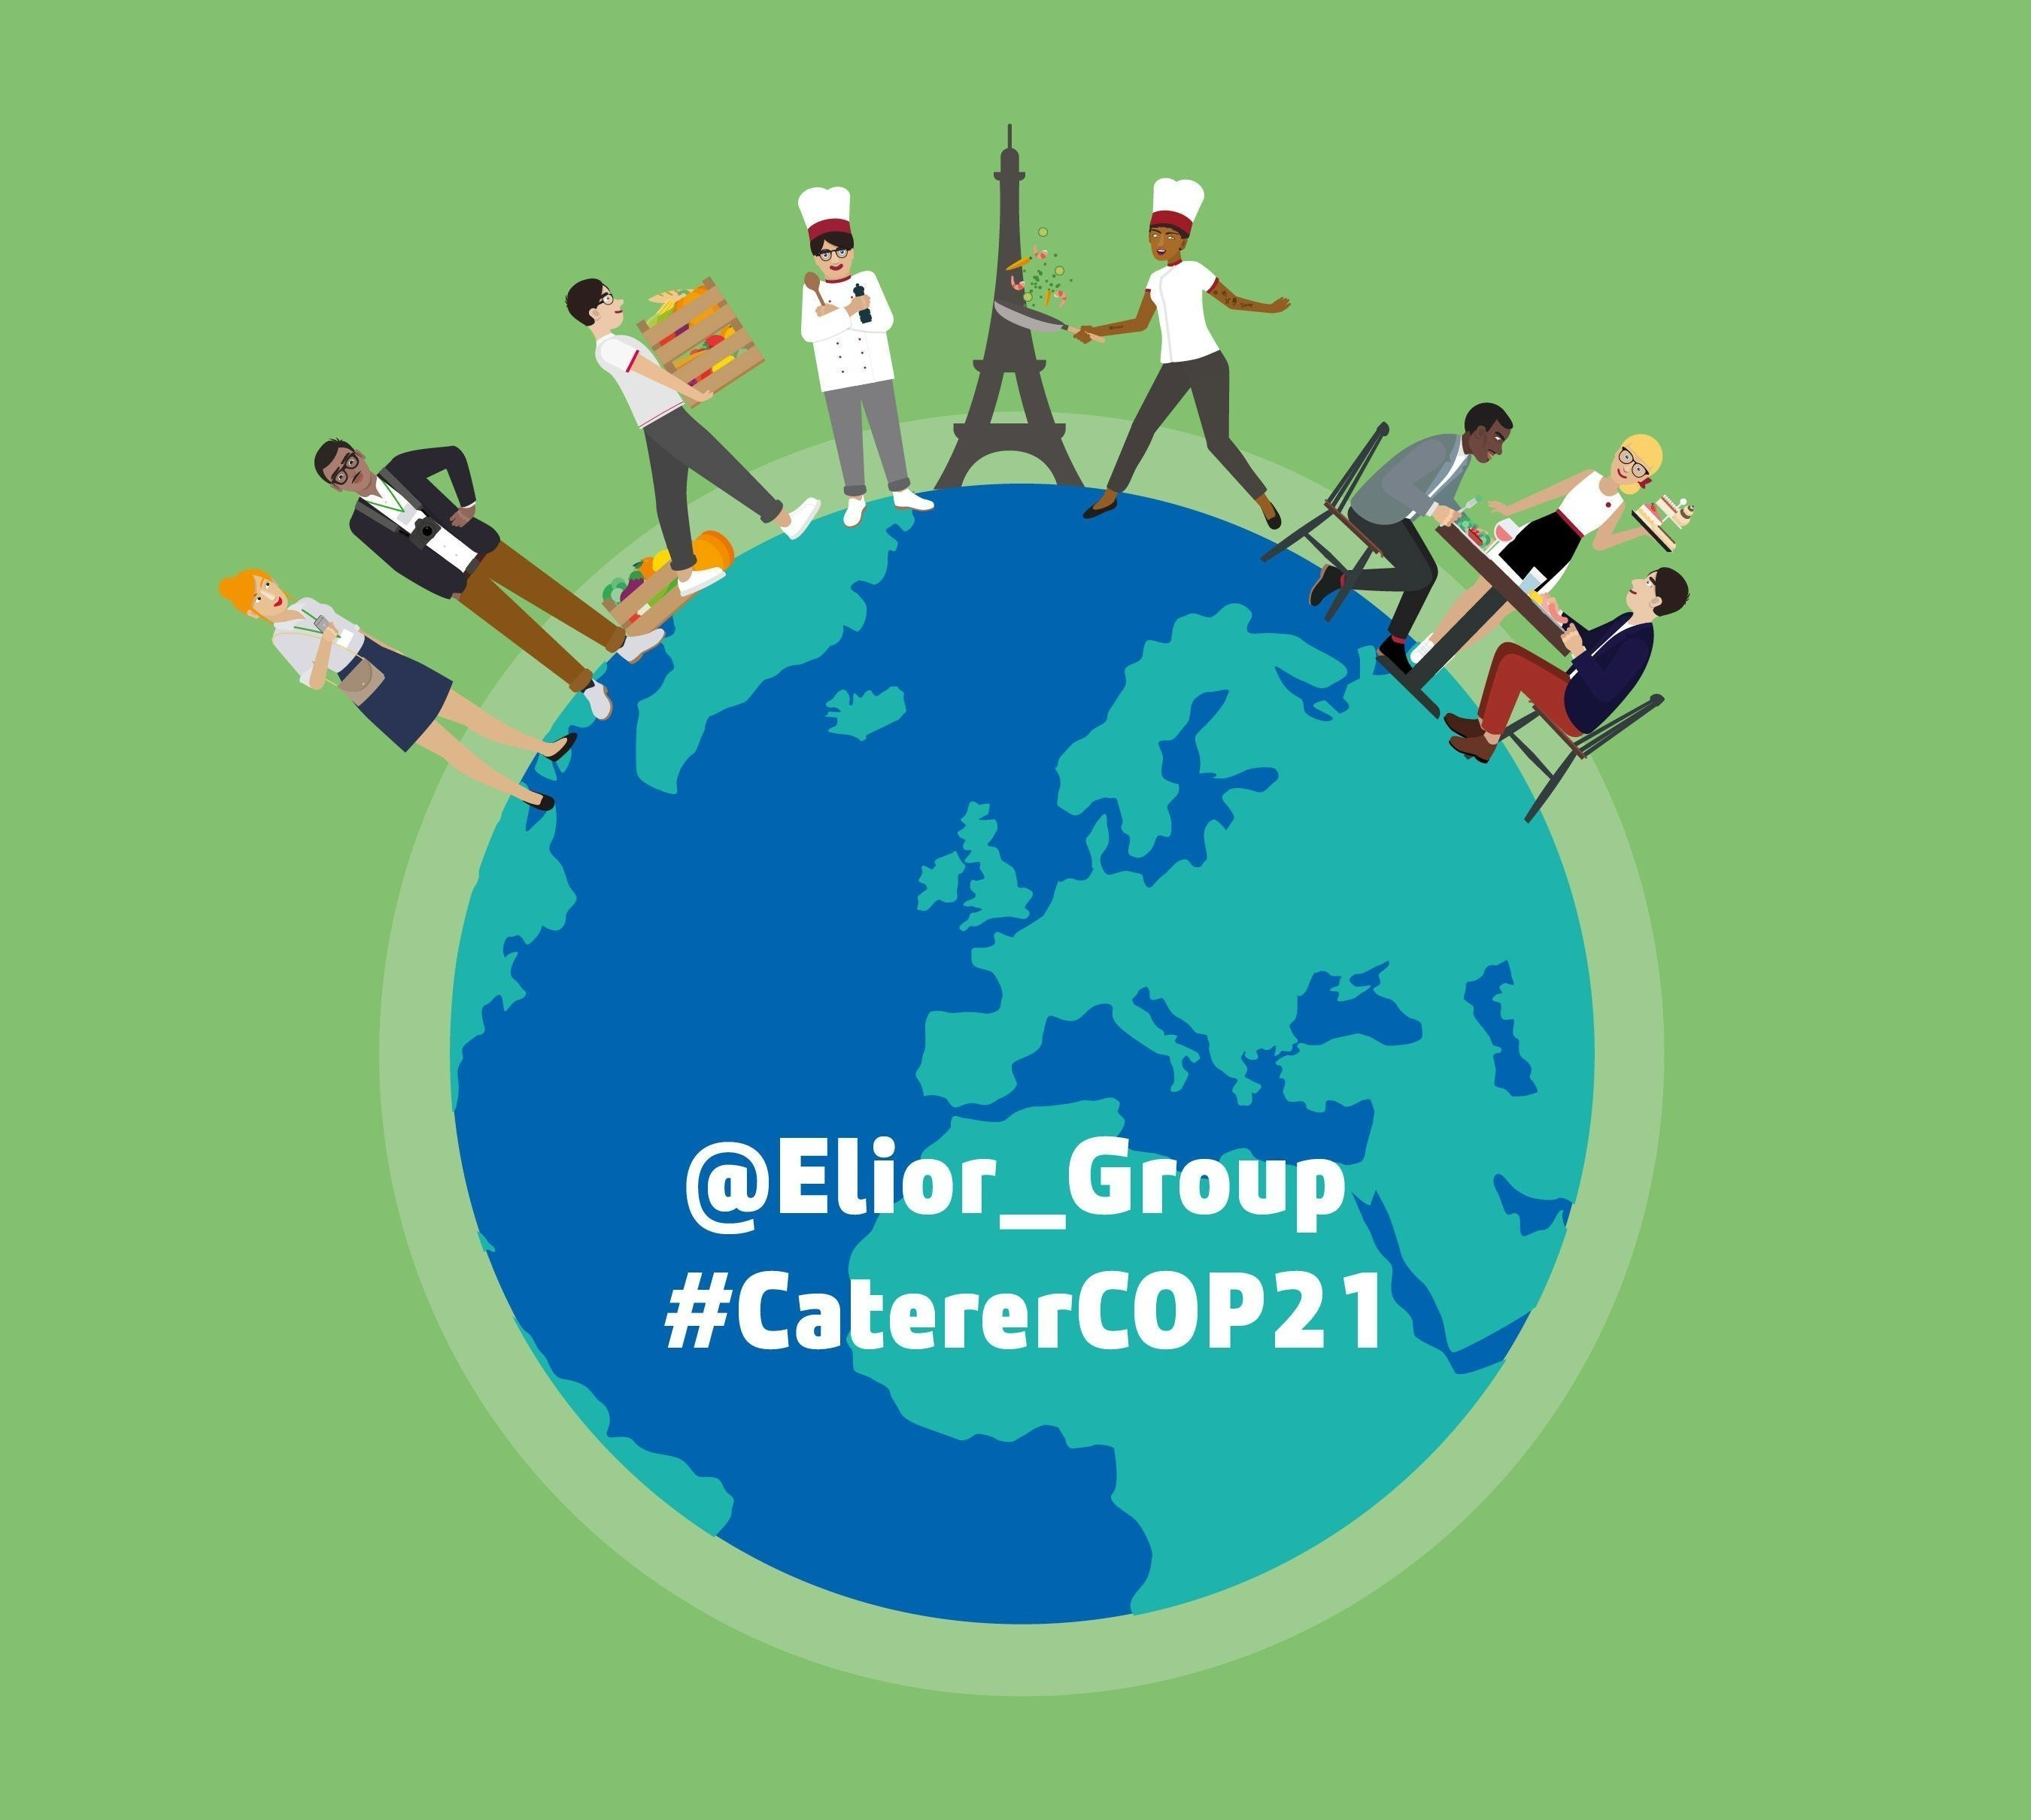 Elior Group, official caterer, UN Climate Conference, @Elior_Group, #CatererCOP21